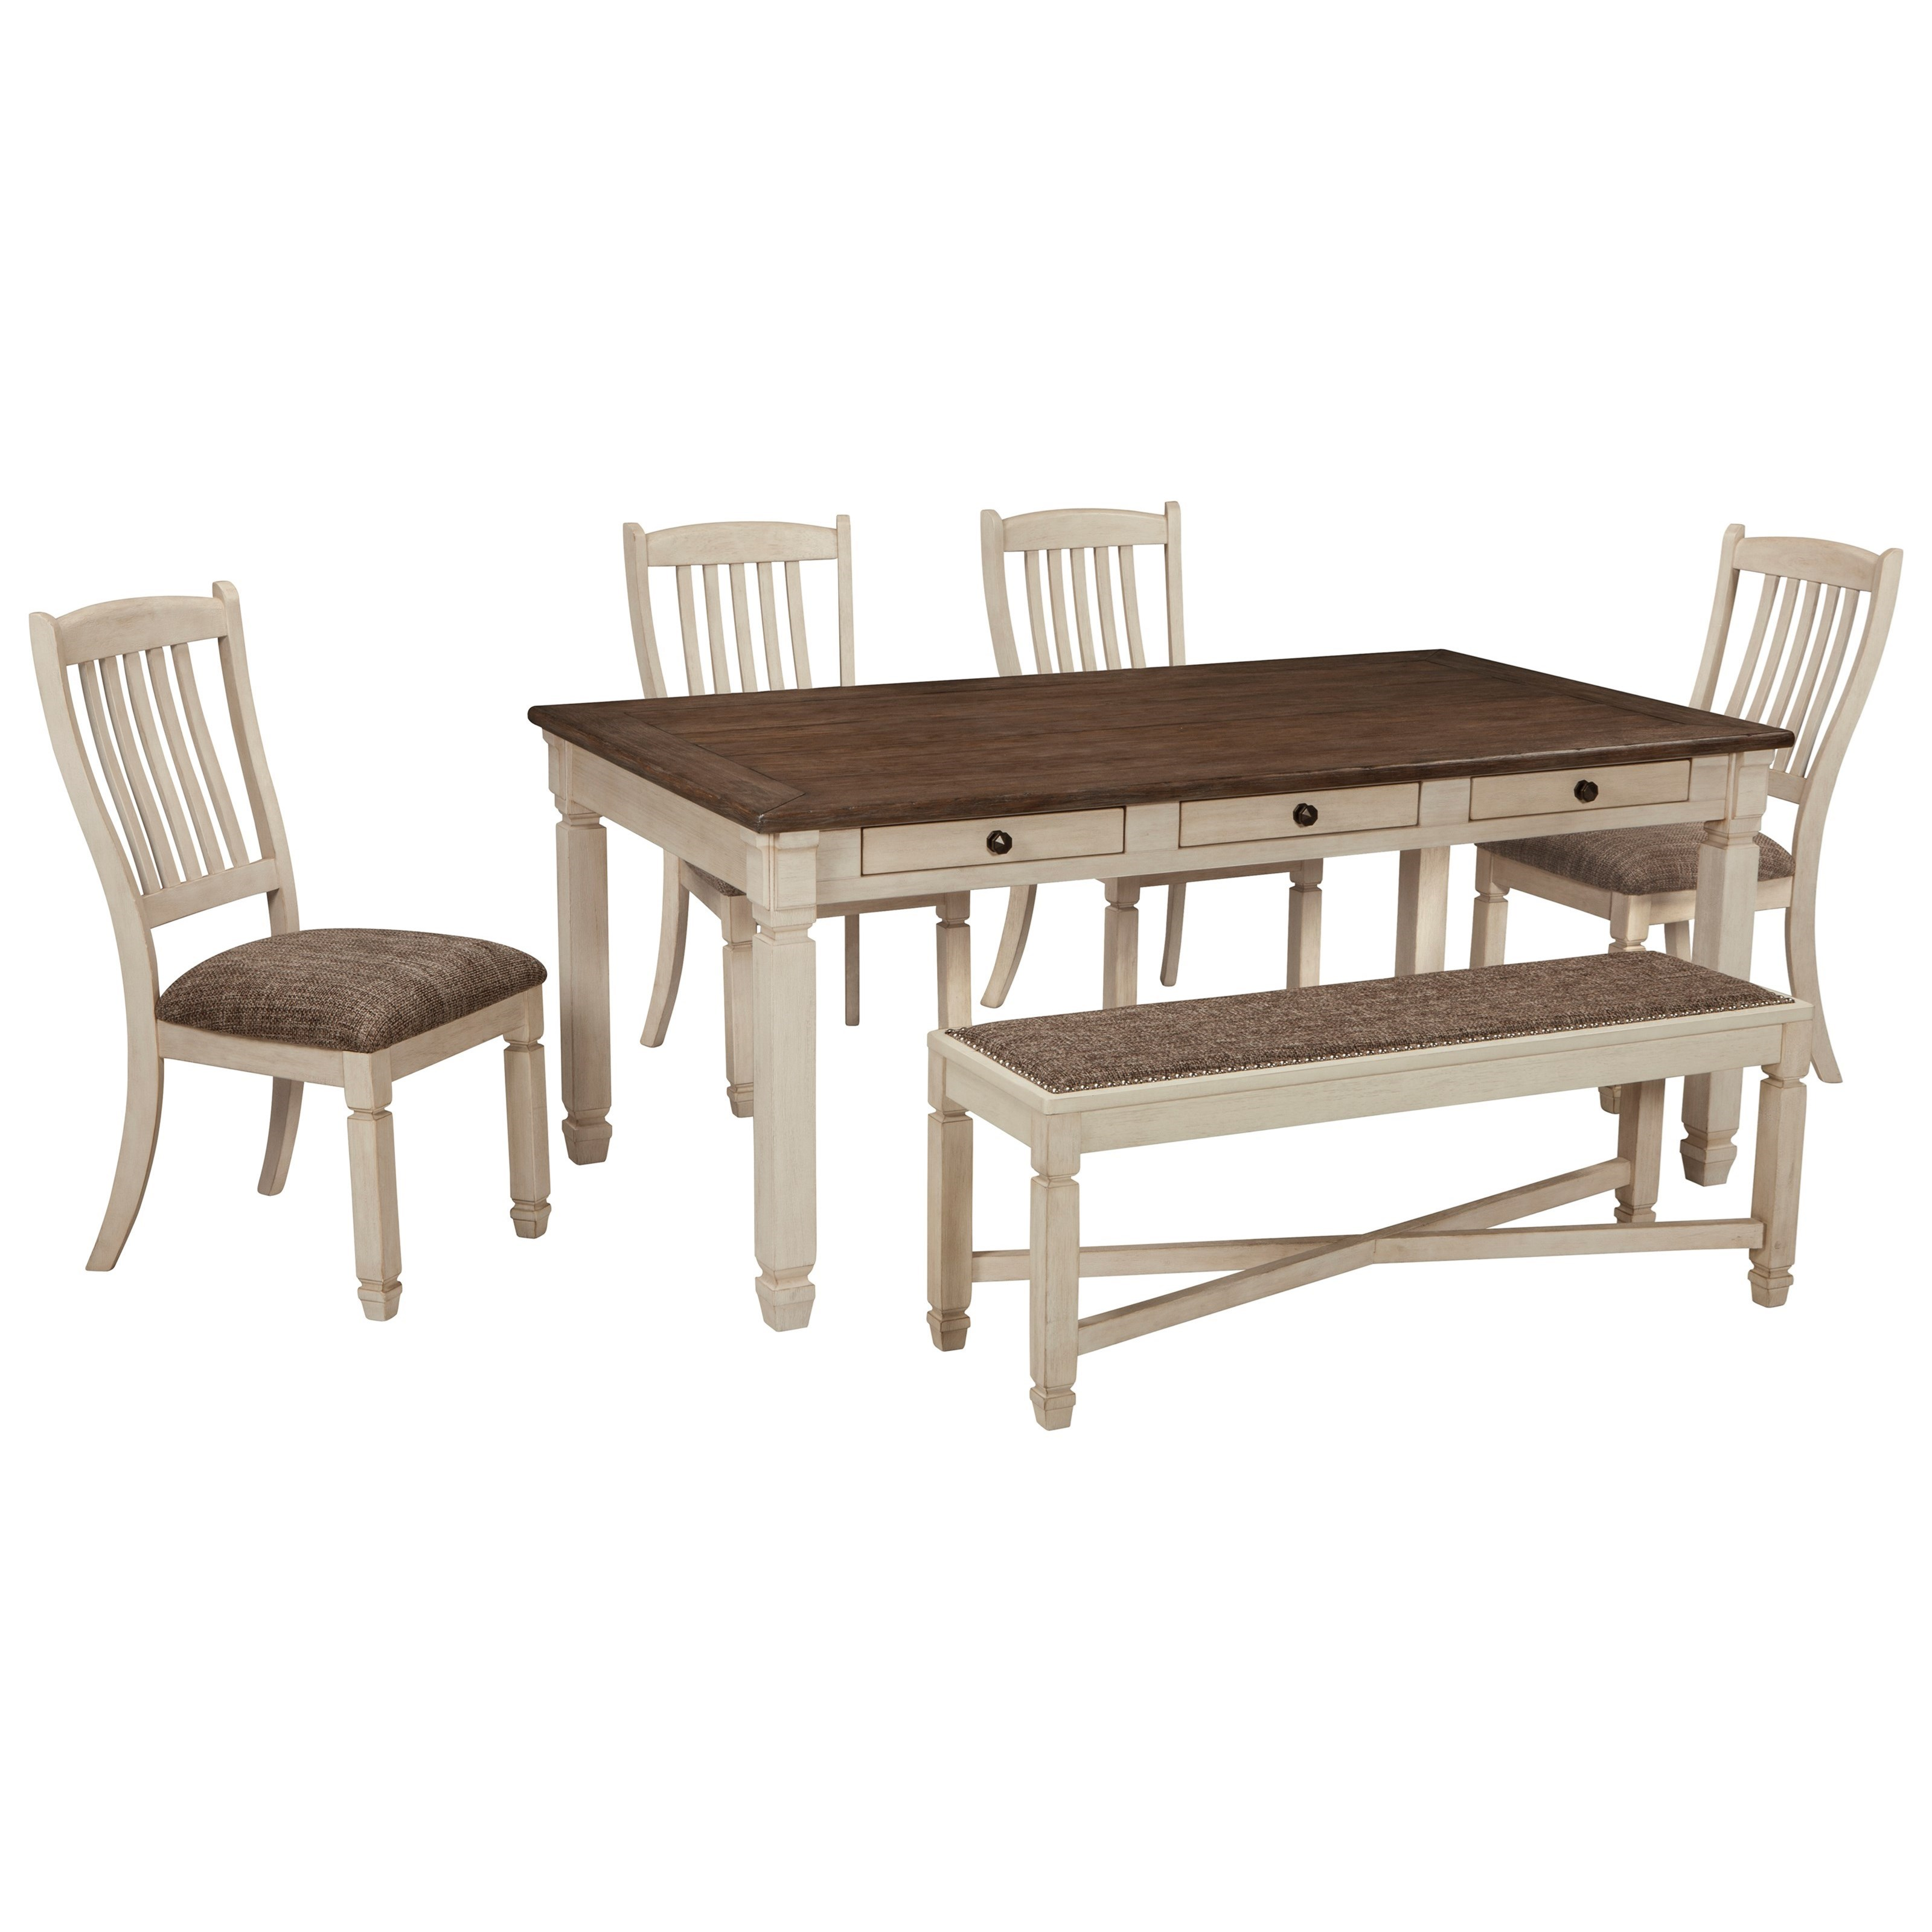 Thomas 6-Piece Dining Set by Signature Design by Ashley at Crowley Furniture & Mattress